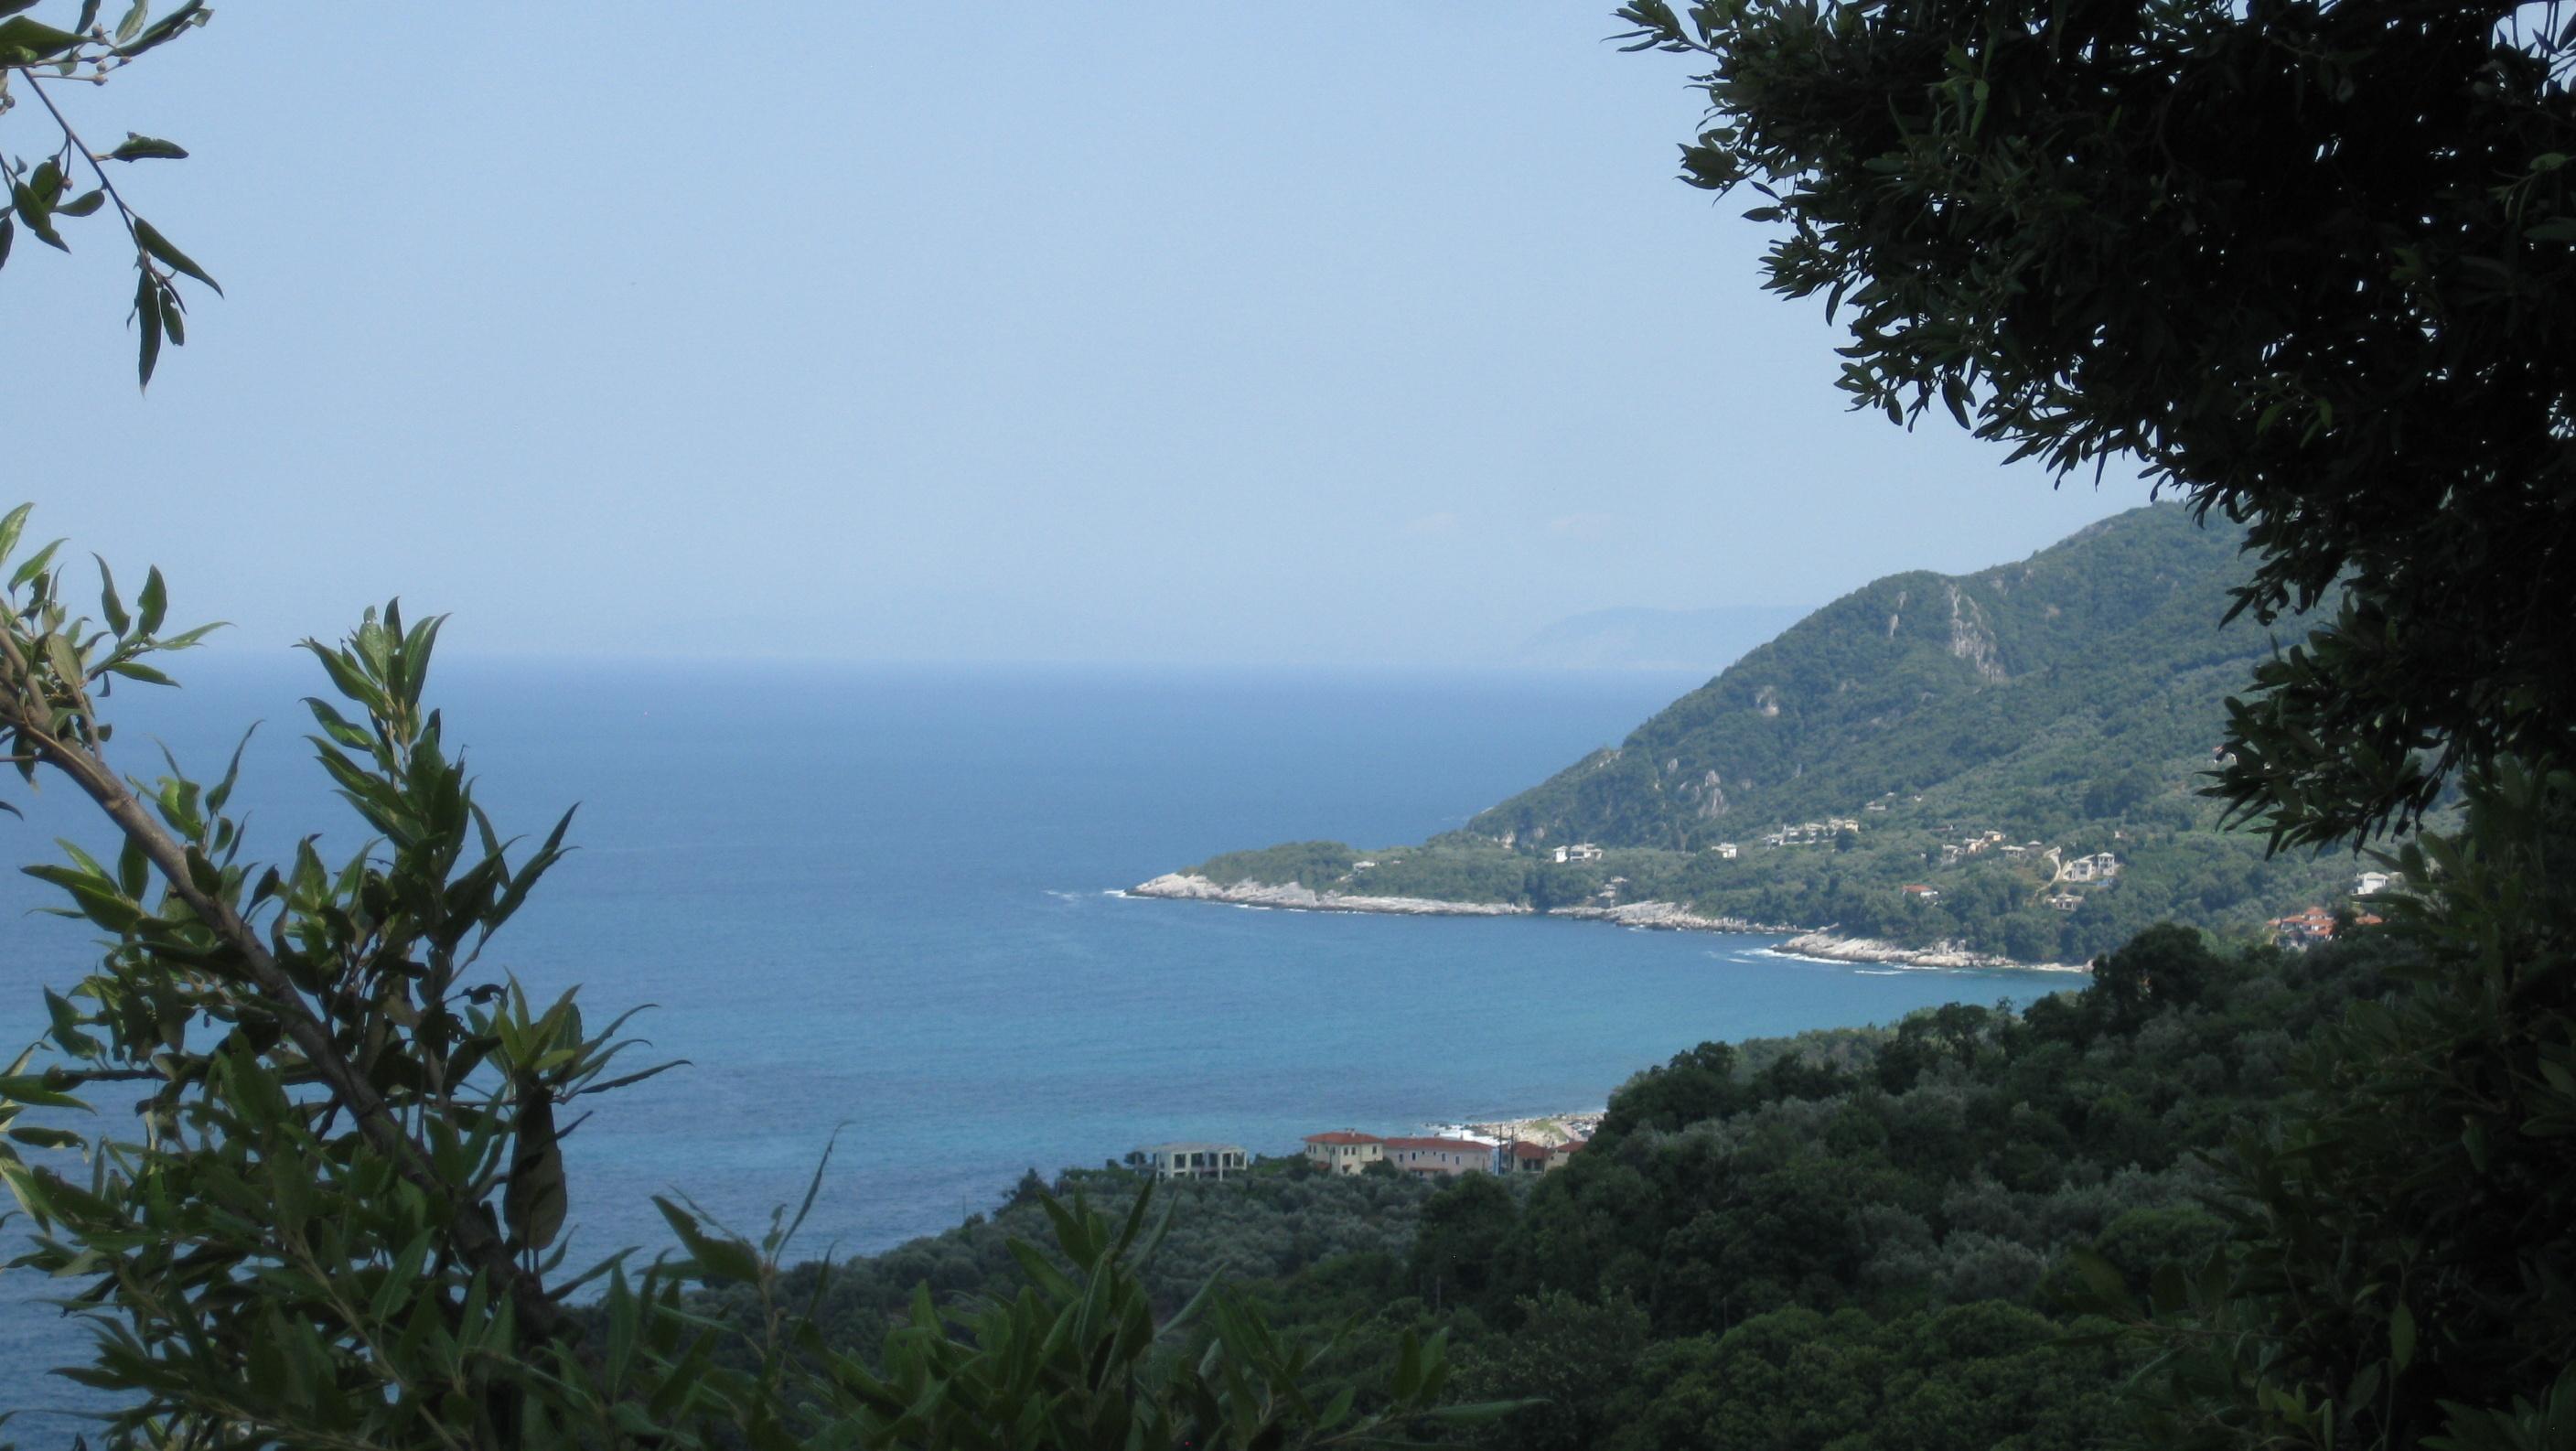 View southward from Alexandros